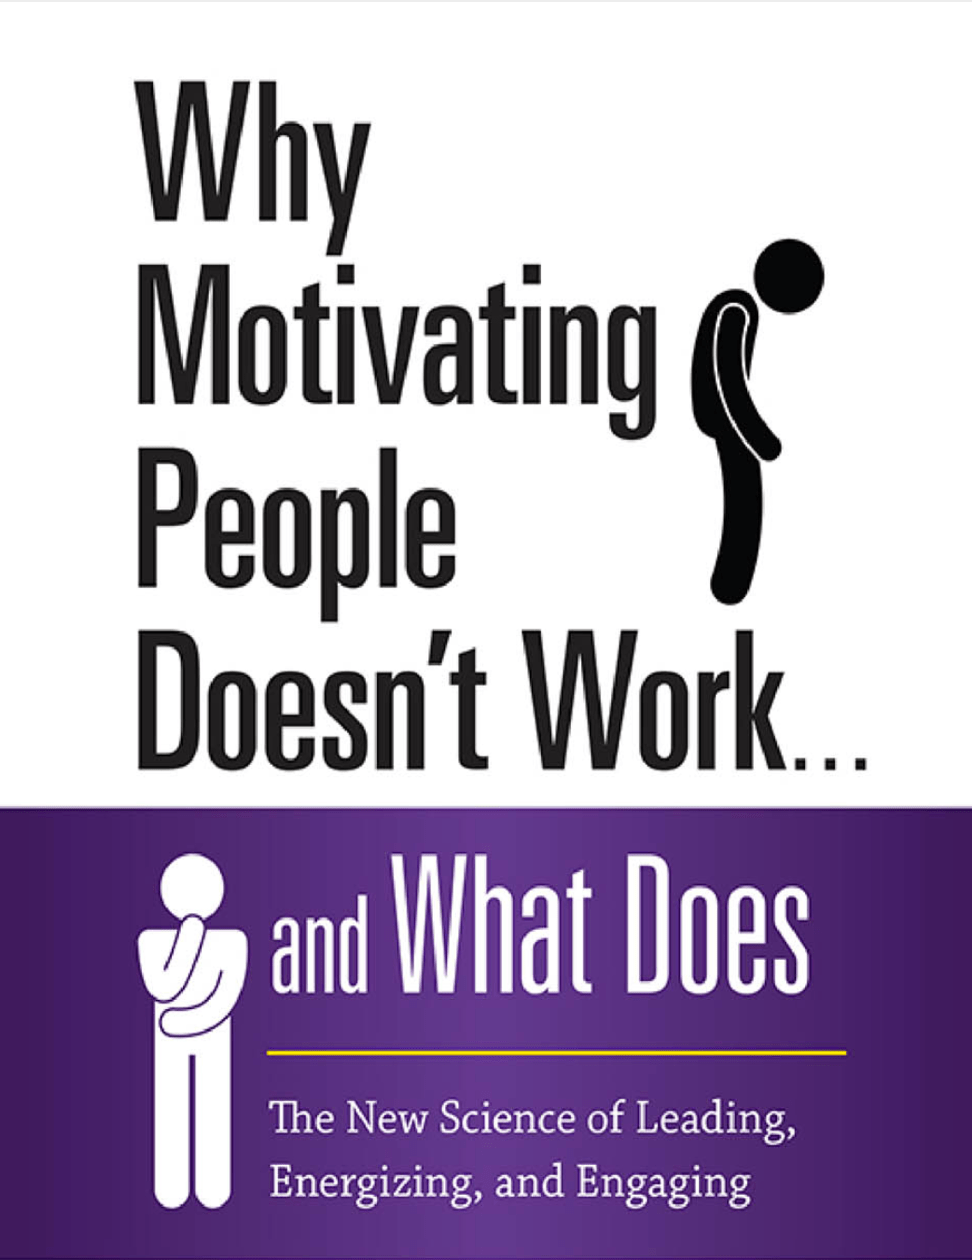 Why Motivating People Doesn't Work...And What Does book